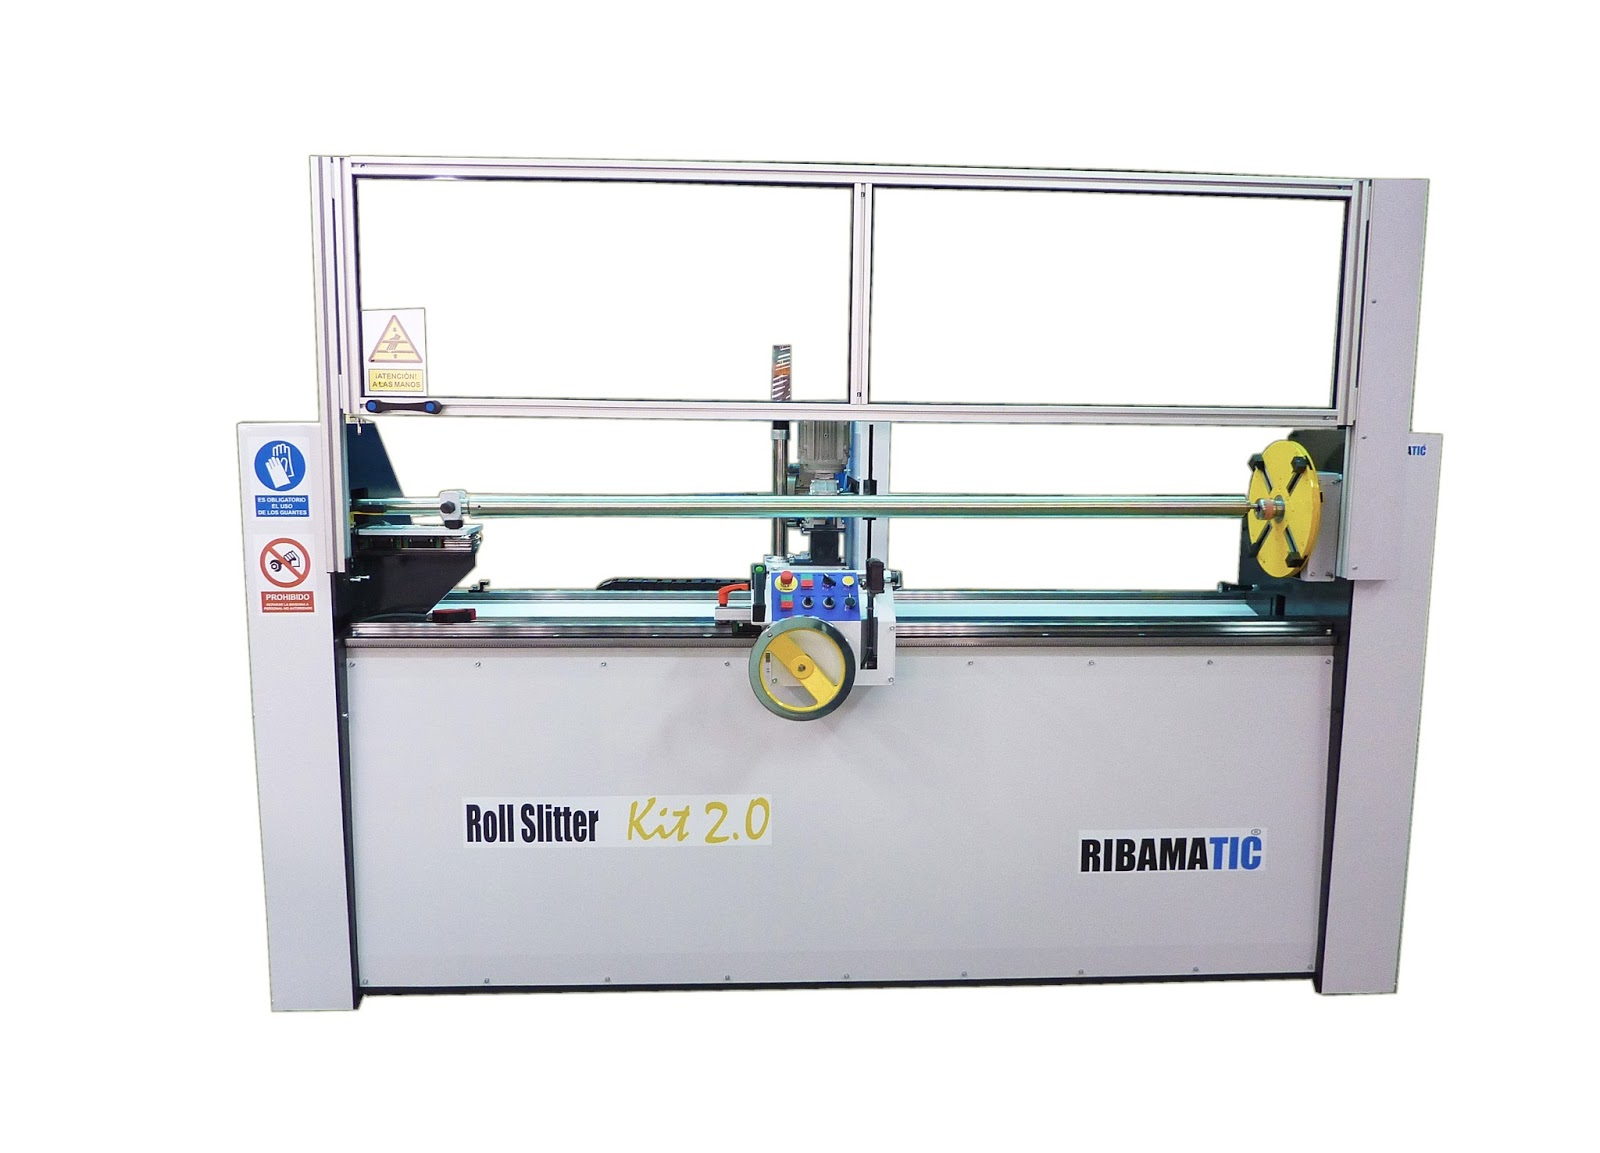 Ribamatic Roll Slitter Roll Slitting Machines Foils